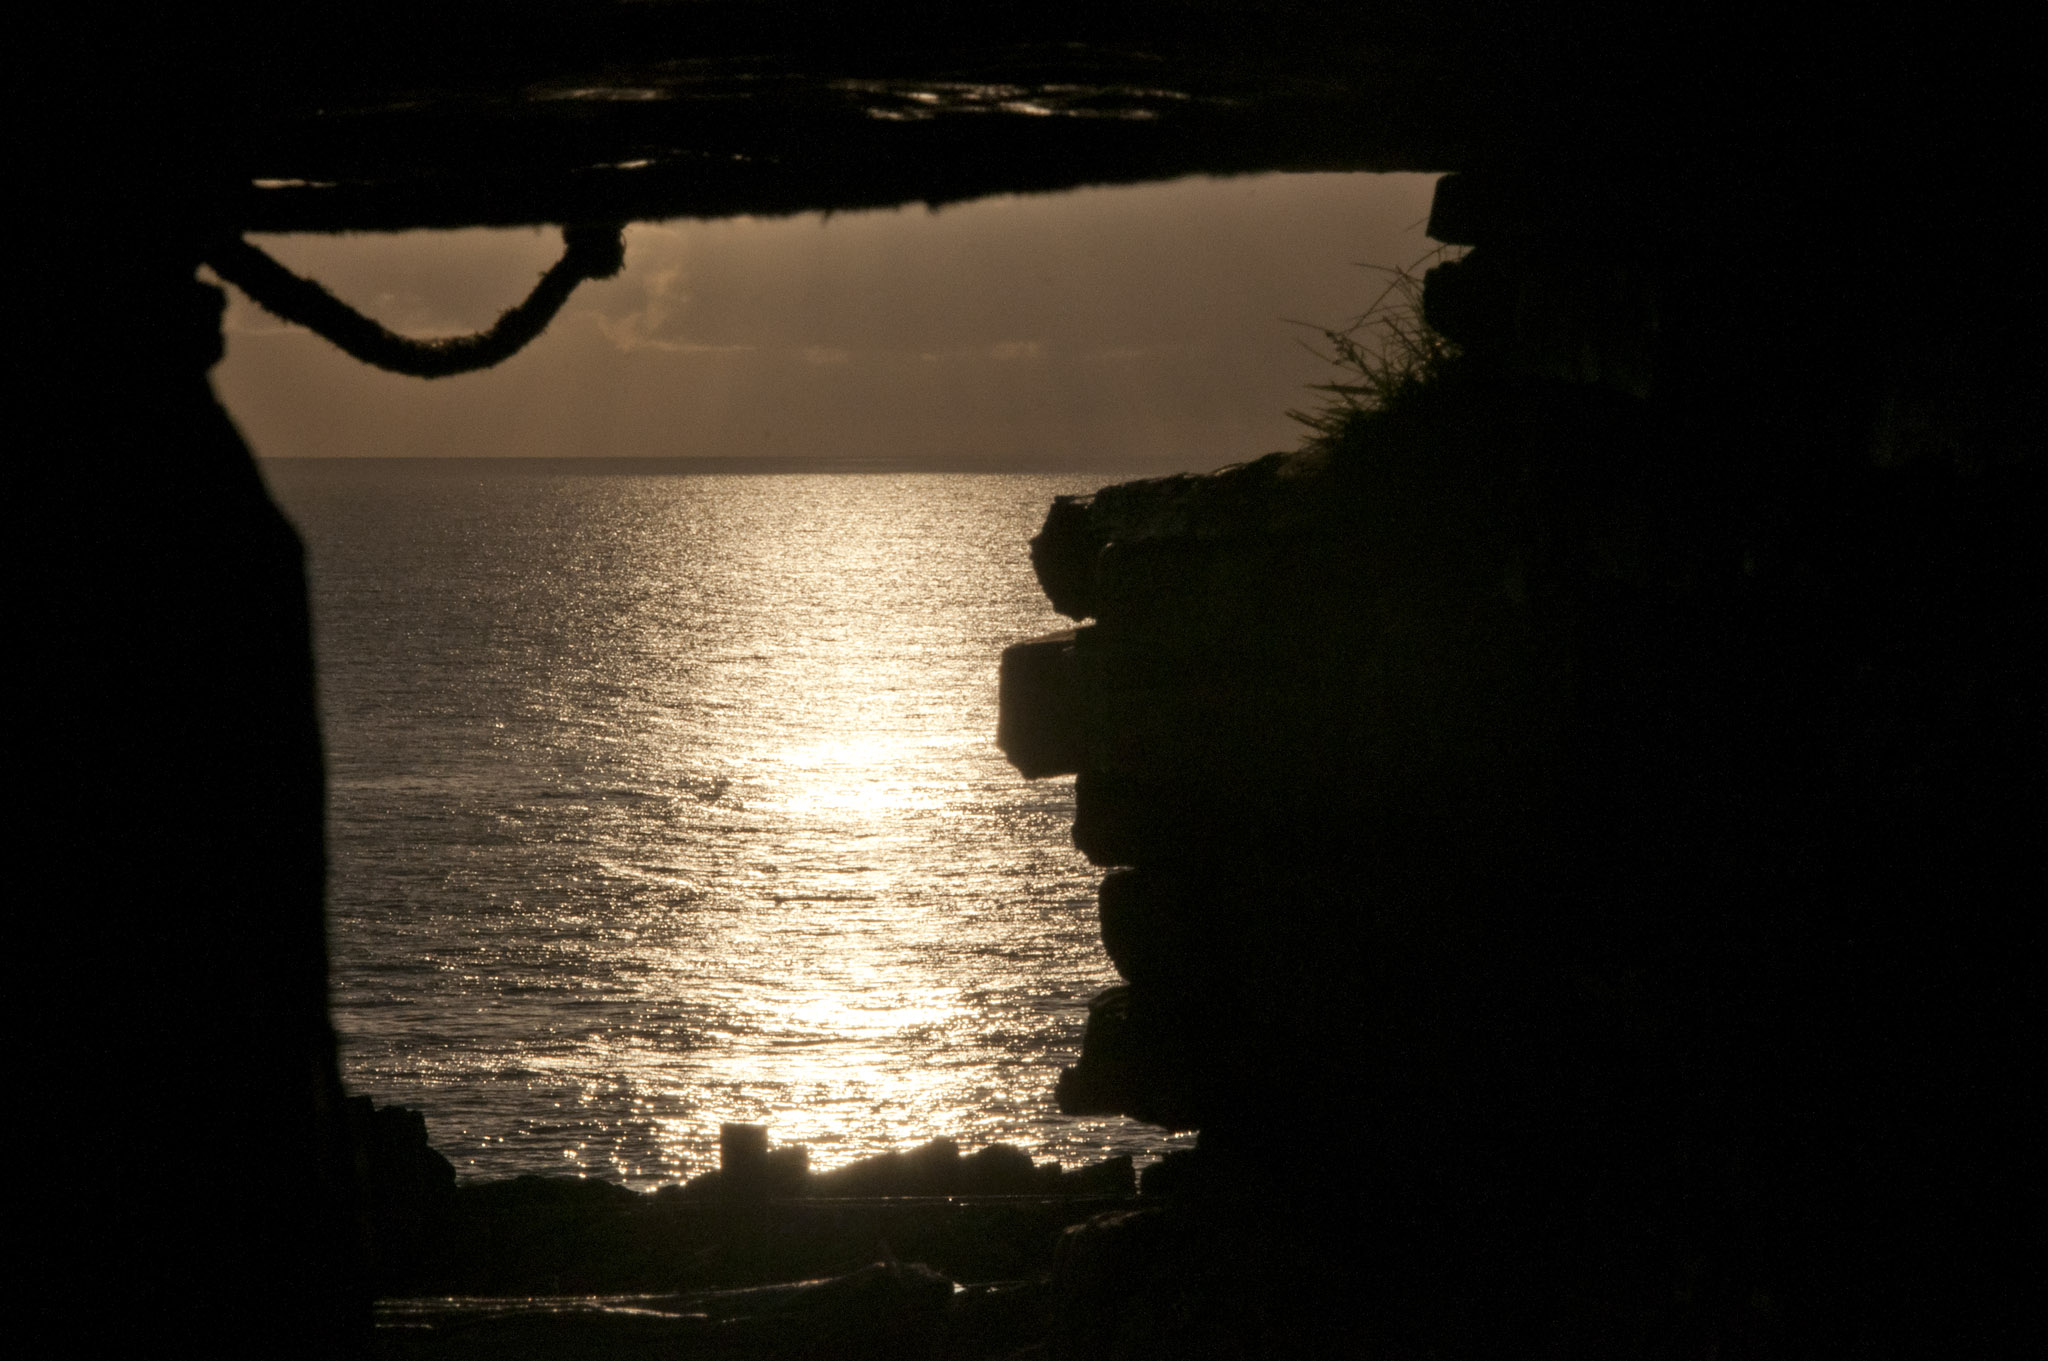 Dawn Sunlight reflecting upon the sea, as seen from inside the chamber at tomb of the eagles